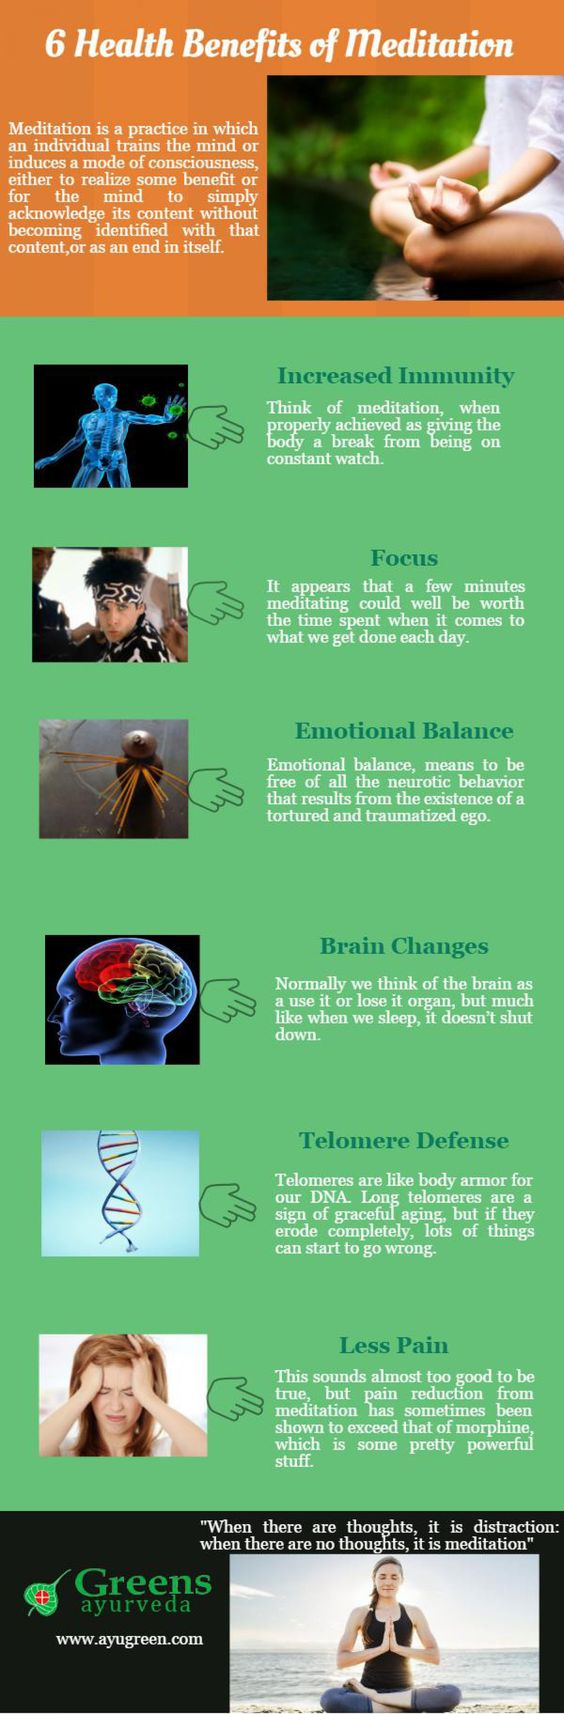 6 Health Benefits of Meditation Infographic